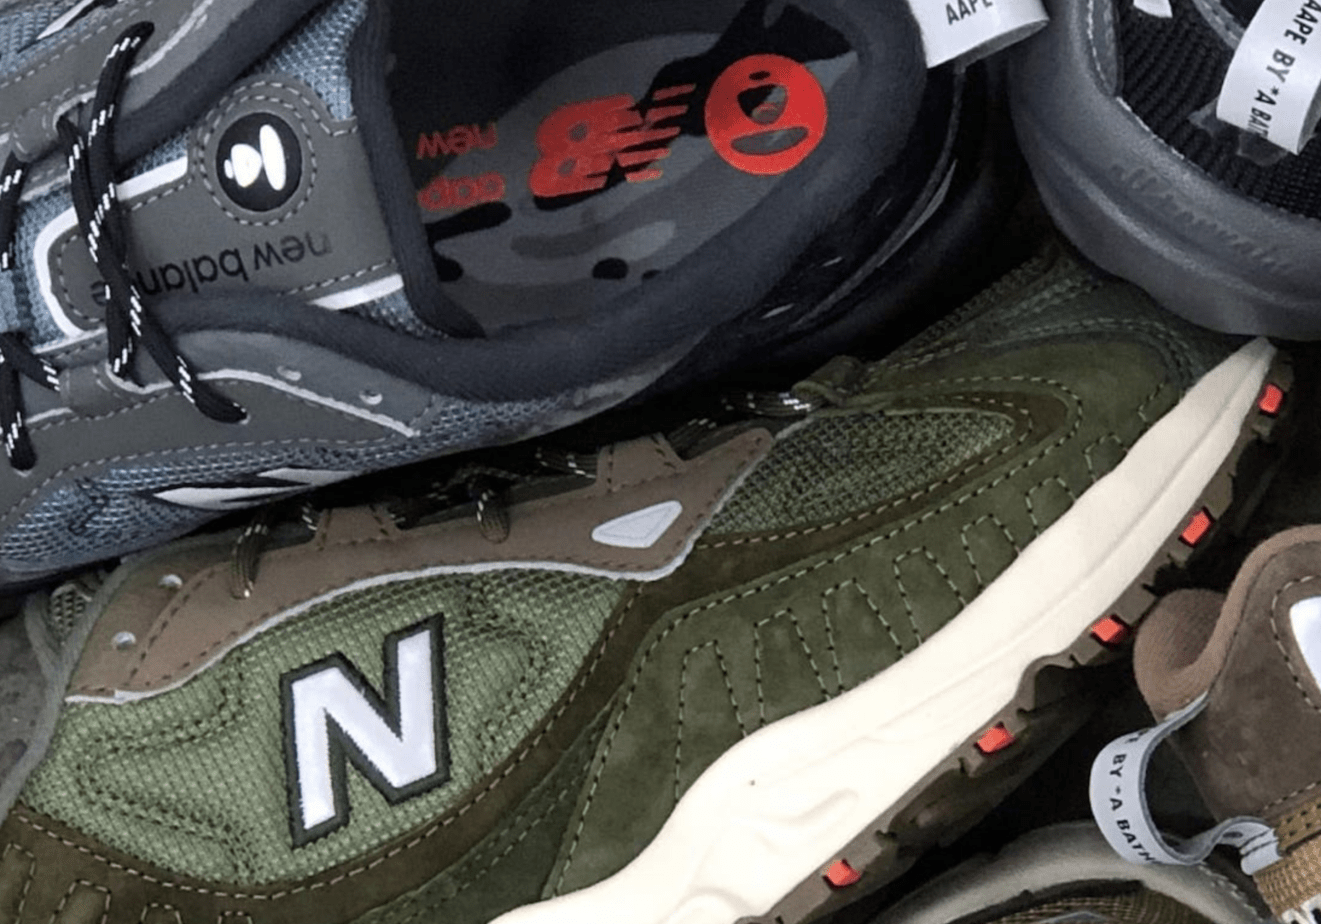 AAPE Teases a Collaboration With New Balance Featuring the 703 Trainer